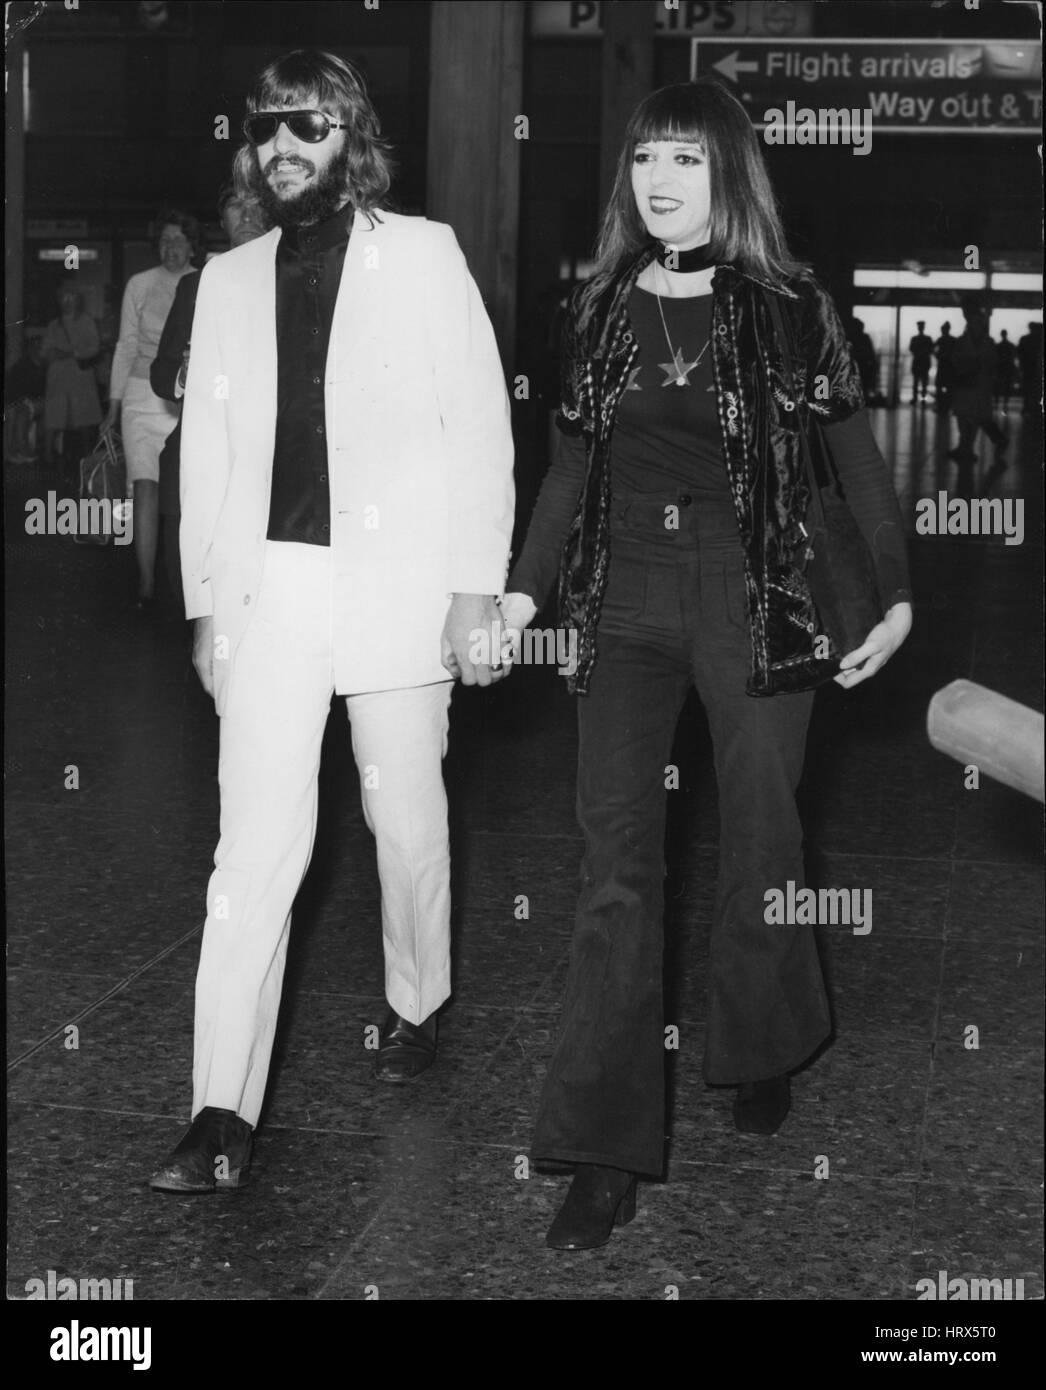 May 05, 1971 - Ring Starr Leaves For Wedding Of Mick Jagger: Photo shows Beatle Ringo Starr and his wife, Maureen, - Stock Image